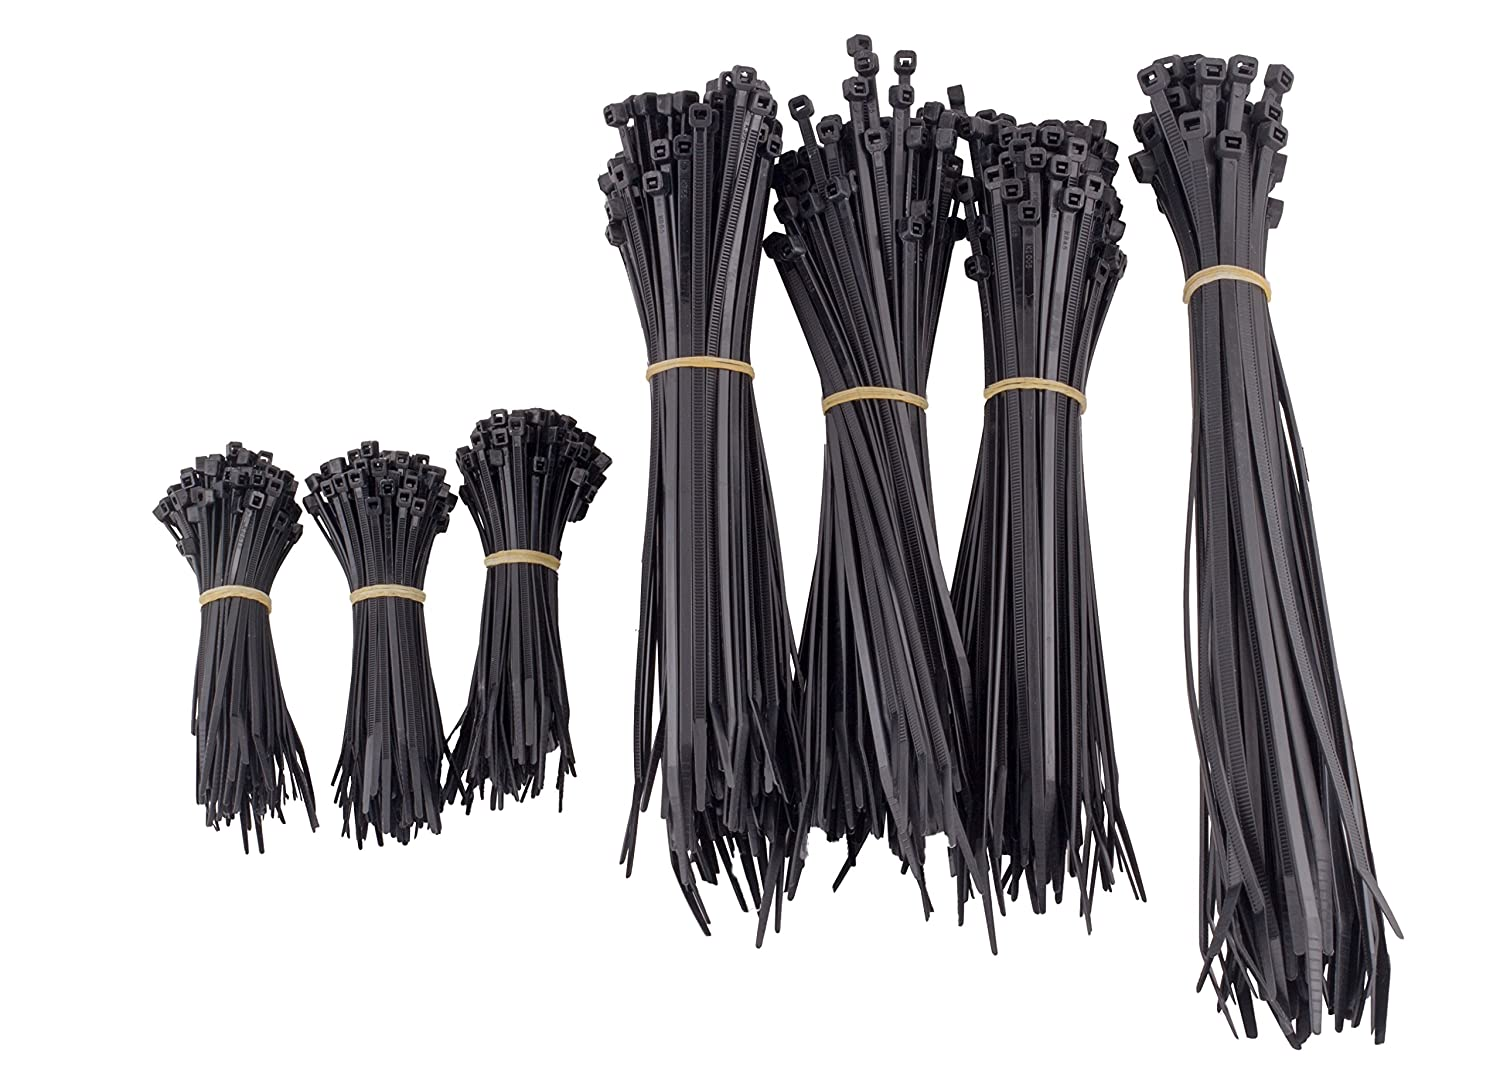 NSI CTP-650B 650 Piece Cable Tie Canister Pack Uv Black